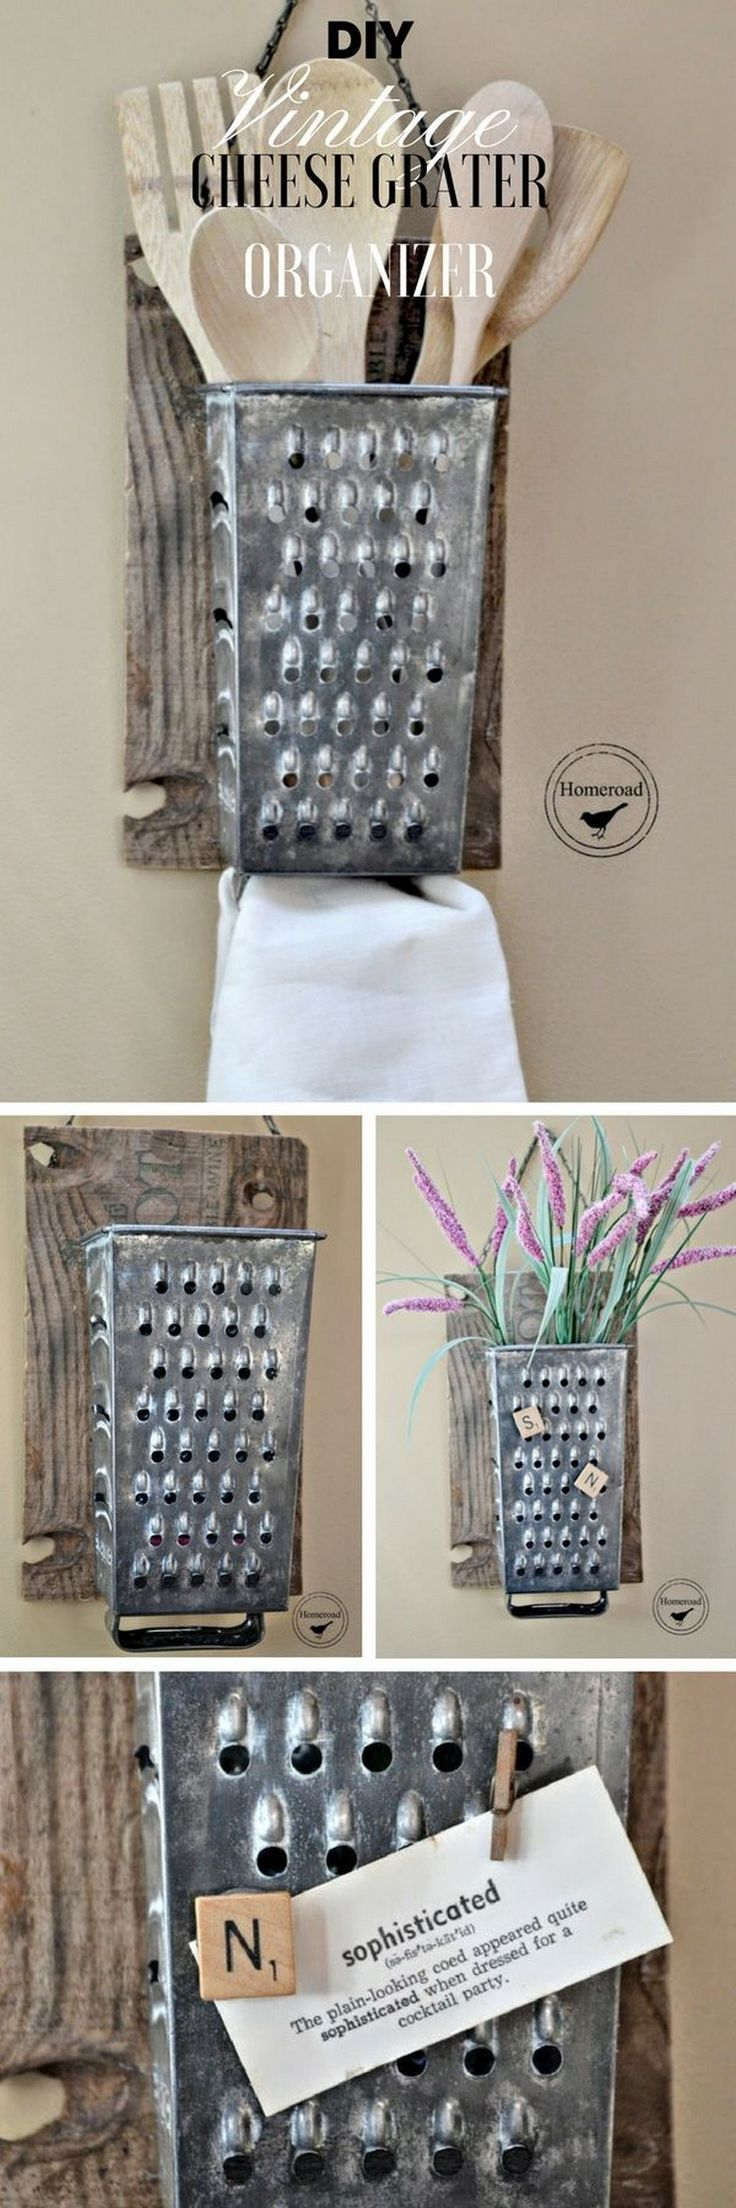 Best 25+ Rustic home decorating ideas on Pinterest | Barnwood ...